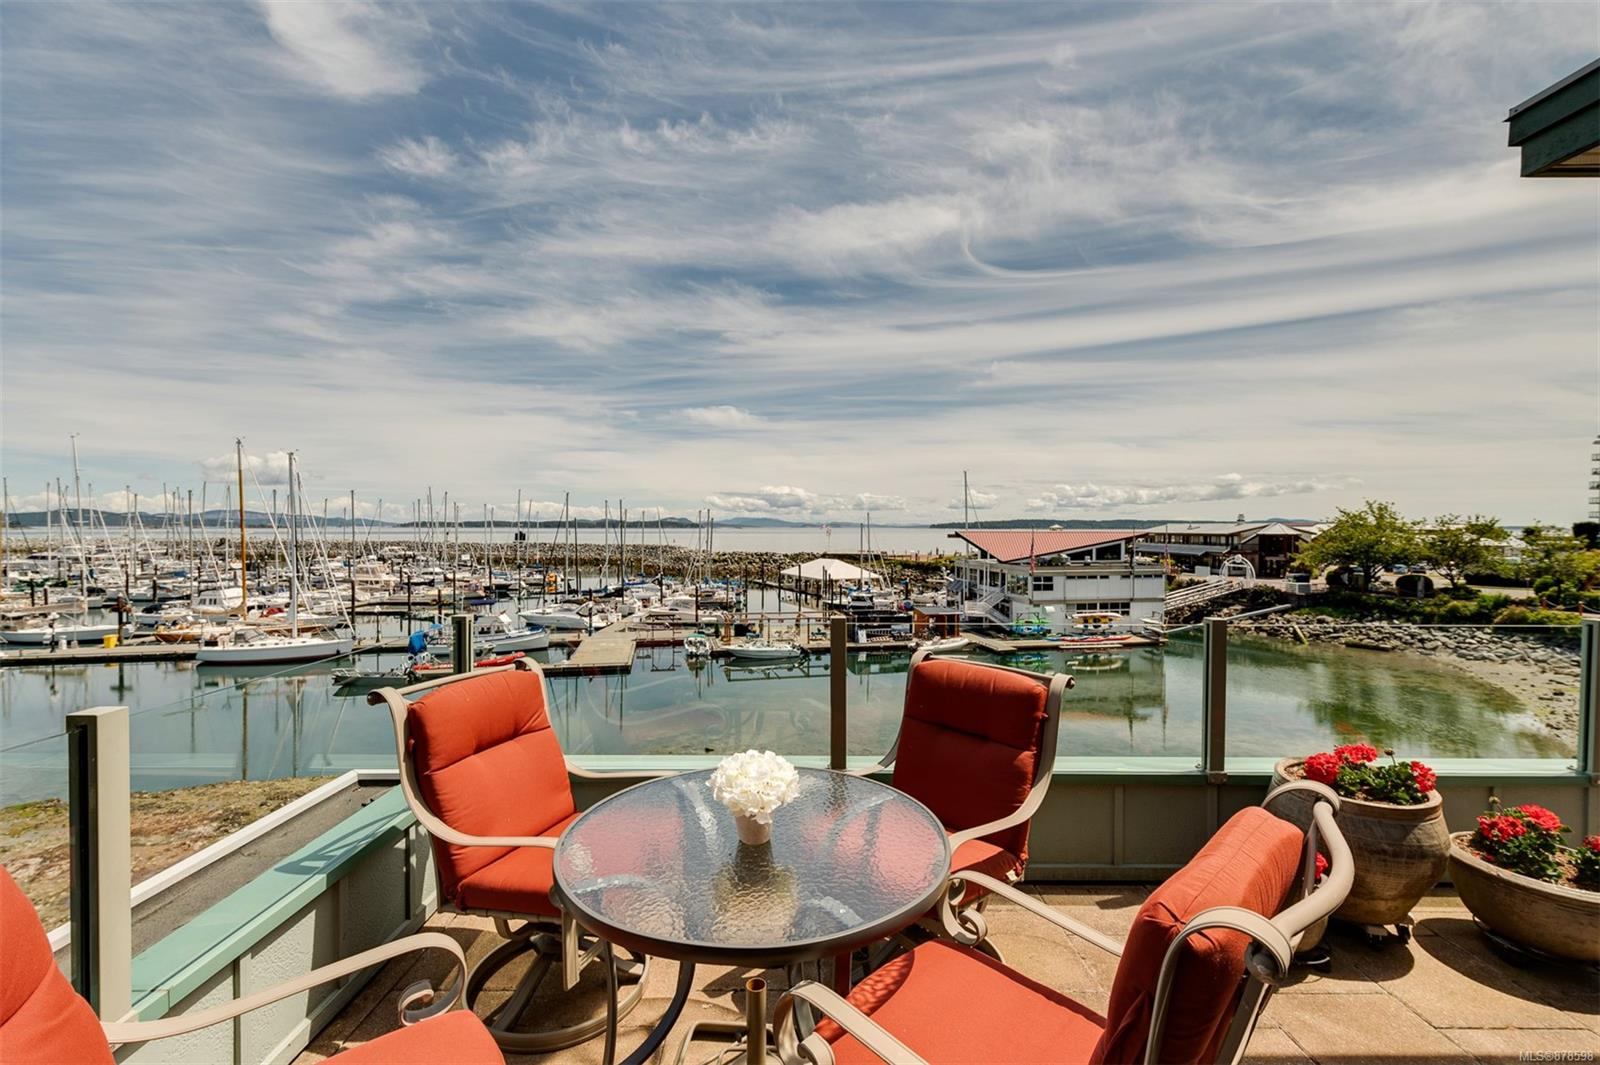 Fabulous One Level Waterfront Living! The Panoramic Ocean View to Mt Baker from all principal rooms is simply stunning. The location is unsurpassed. Looking to downsize from a large executive home without giving up any of the luxuries? Or wanting a fabulous seaside second home? Don't want to live with hundreds of other people? This exclusive building has only five suites for the most discerning owners. Downtown Sidney is a two block stroll. Tastefully melding all the luxuries of a fine home with all the conveniences of a condominium, the superbly executed layout makes it an easy move from a large home. Two bedrms, two bathrms, plus a den provide all the flexibility that you'll need. Beautiful open concept kitchen, dining and living room all warmed by the three way gas fireplace. From the granite counters in the designer kitchen to the lovely slate floors with infloor radiant heat, the finishing is top quality throughout. Two underground parking spaces accessed by the elevator. Pets ok.